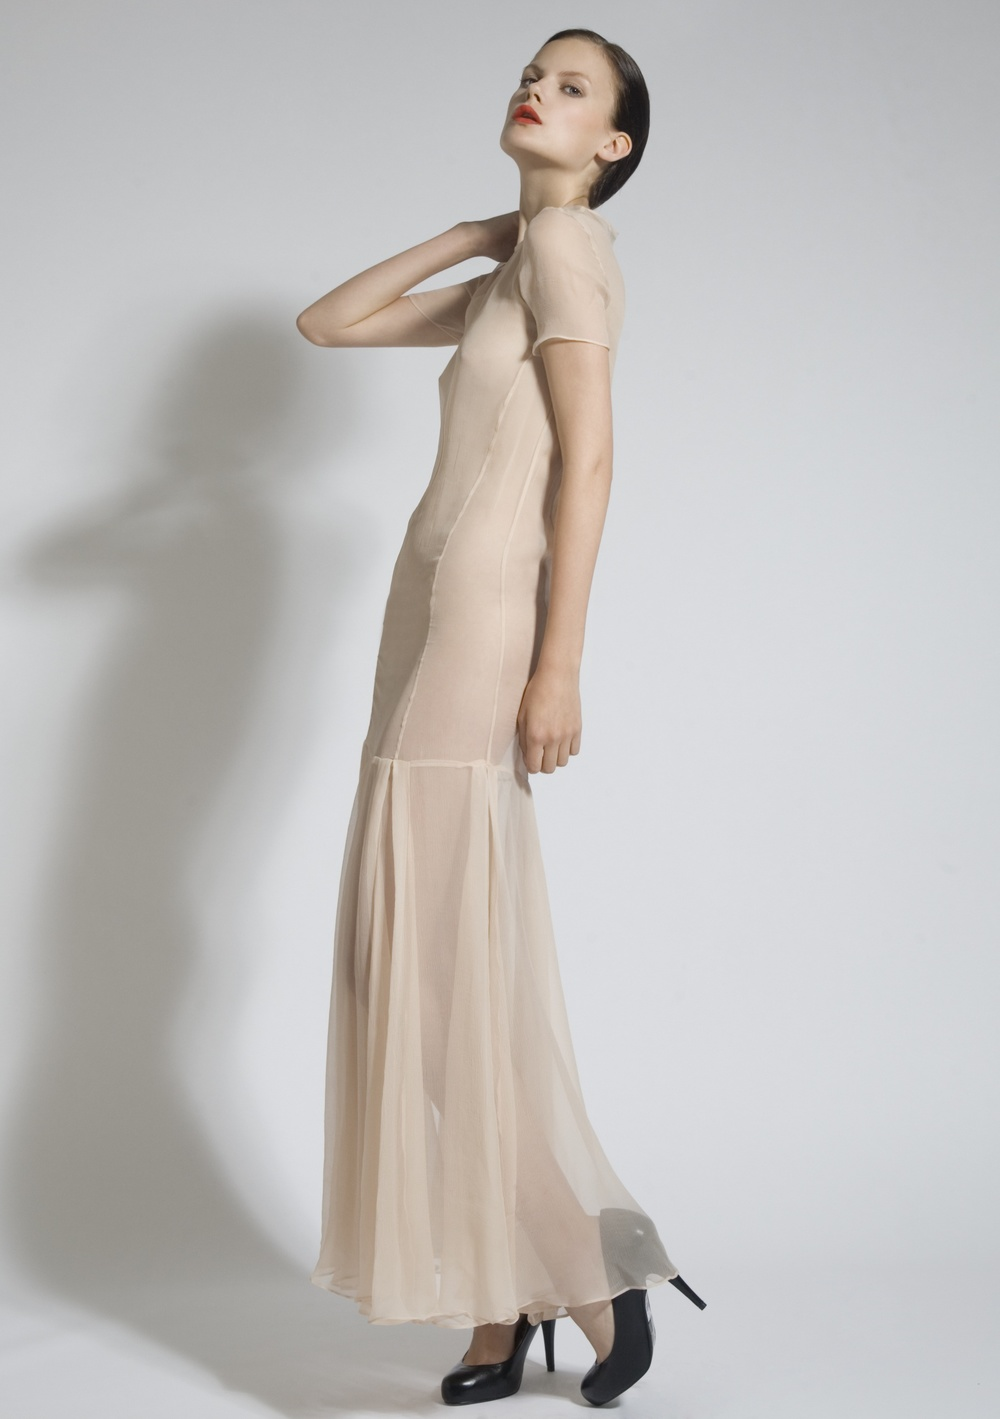 9 Nude Chiffon Pleat Dress.jpg